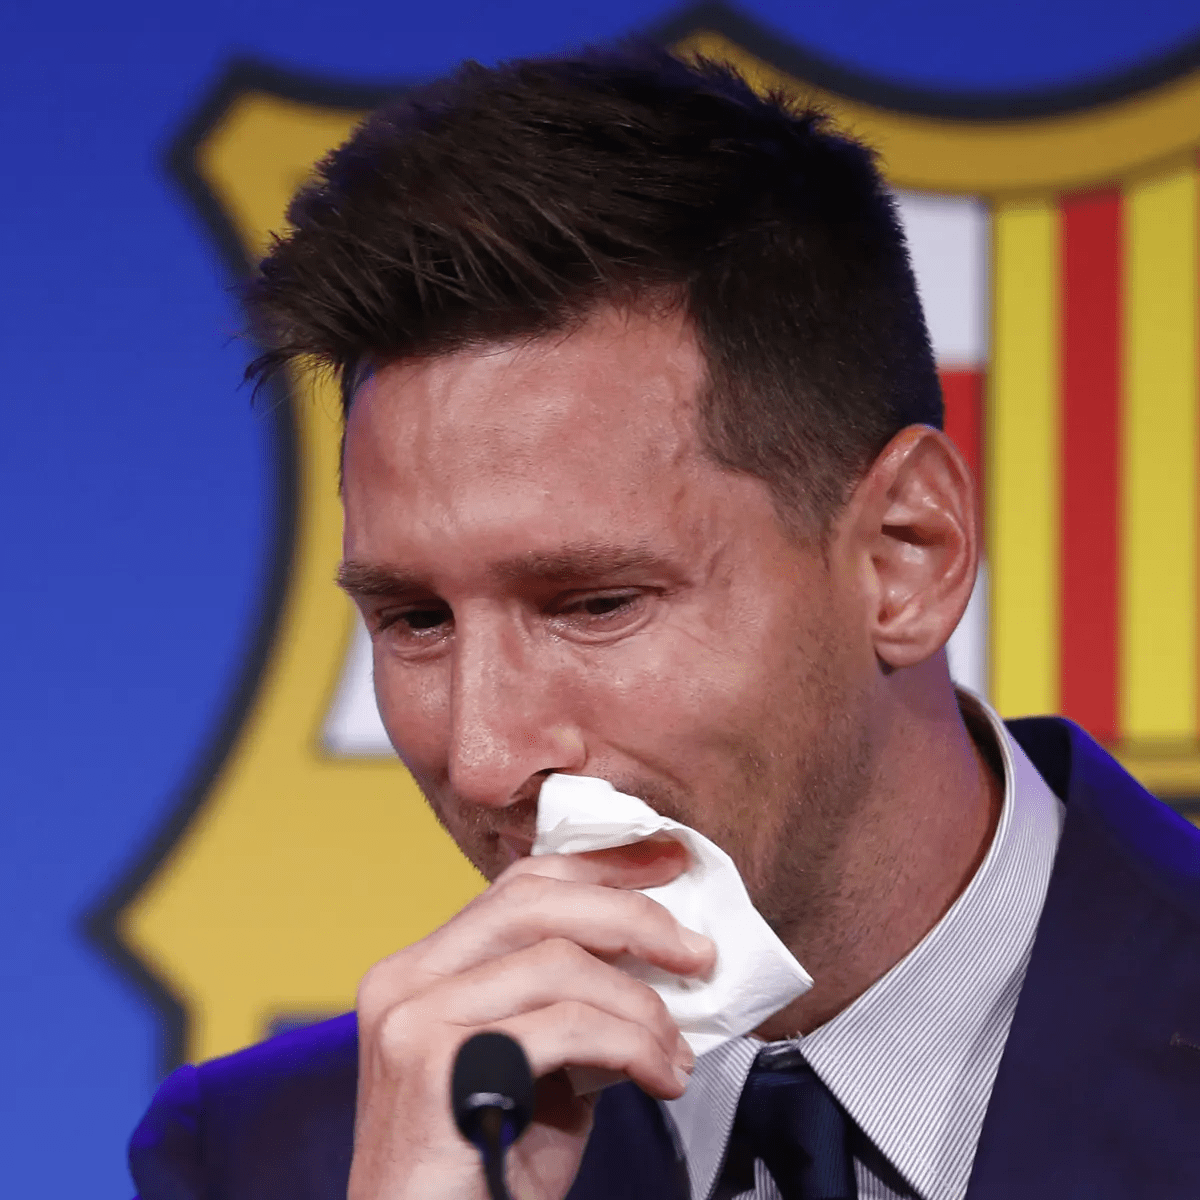 Lionel Messi Signs Two-Year Contract with Paris Saint-Germain HalfofThe